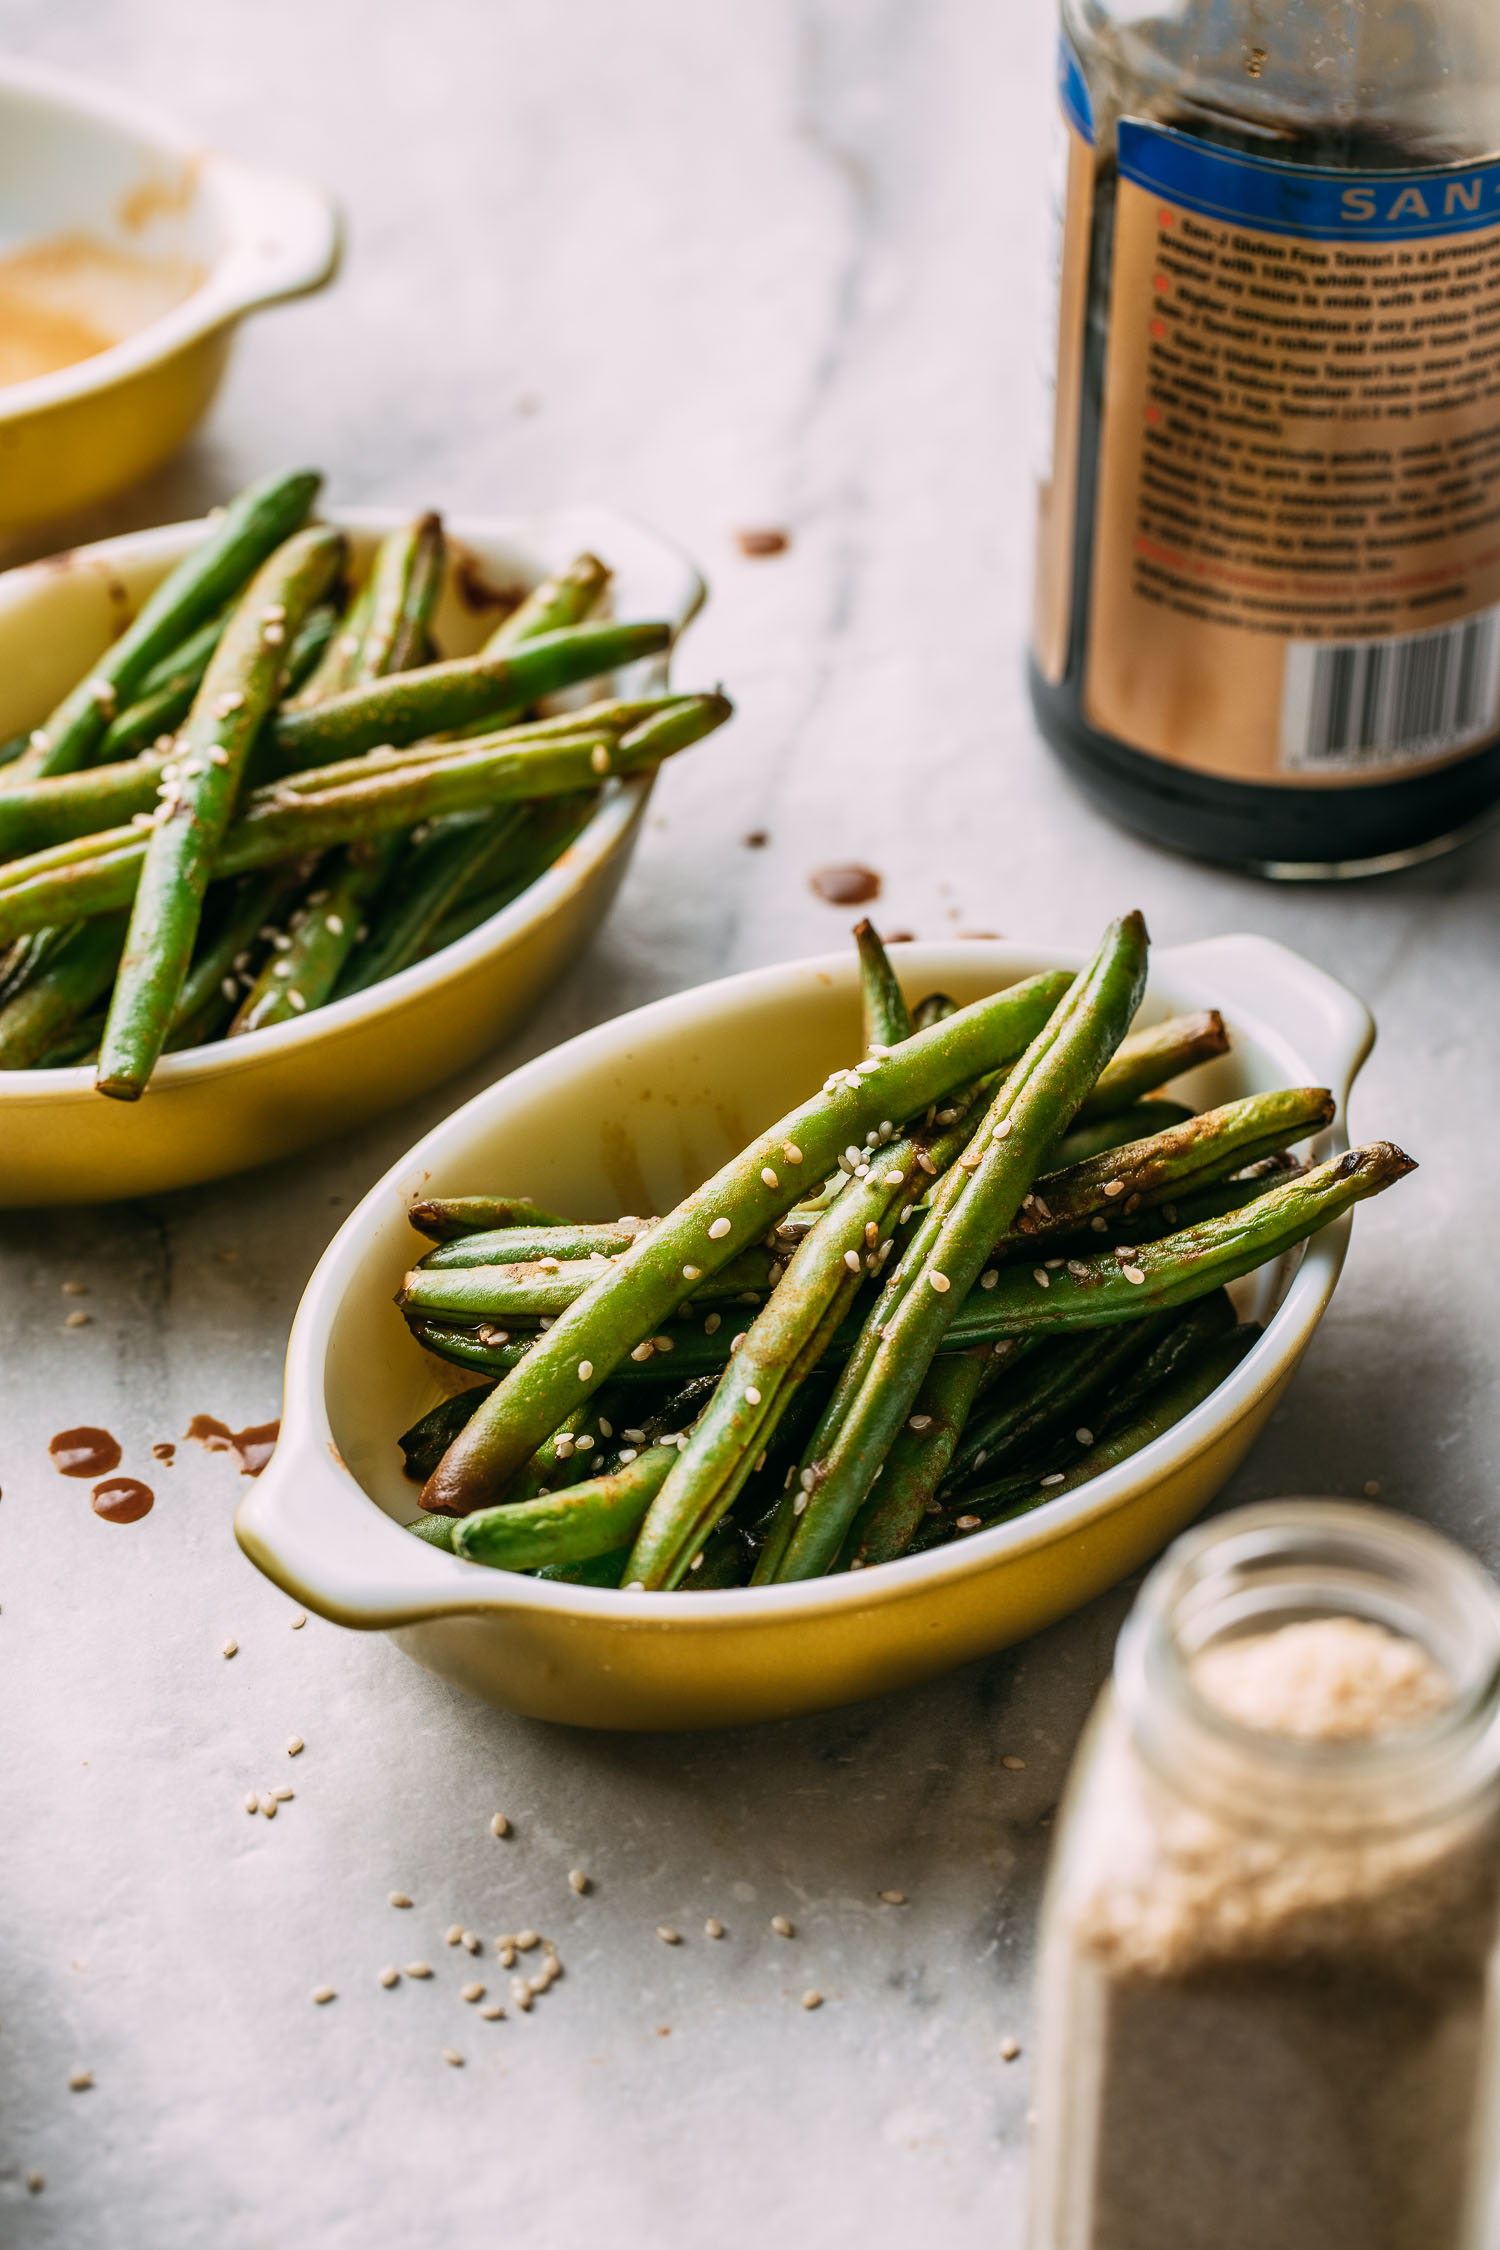 an open jar of garlic powder, a bottle of tamari soy sauce, and two oval dishes of roasted green beans with sesame seeds